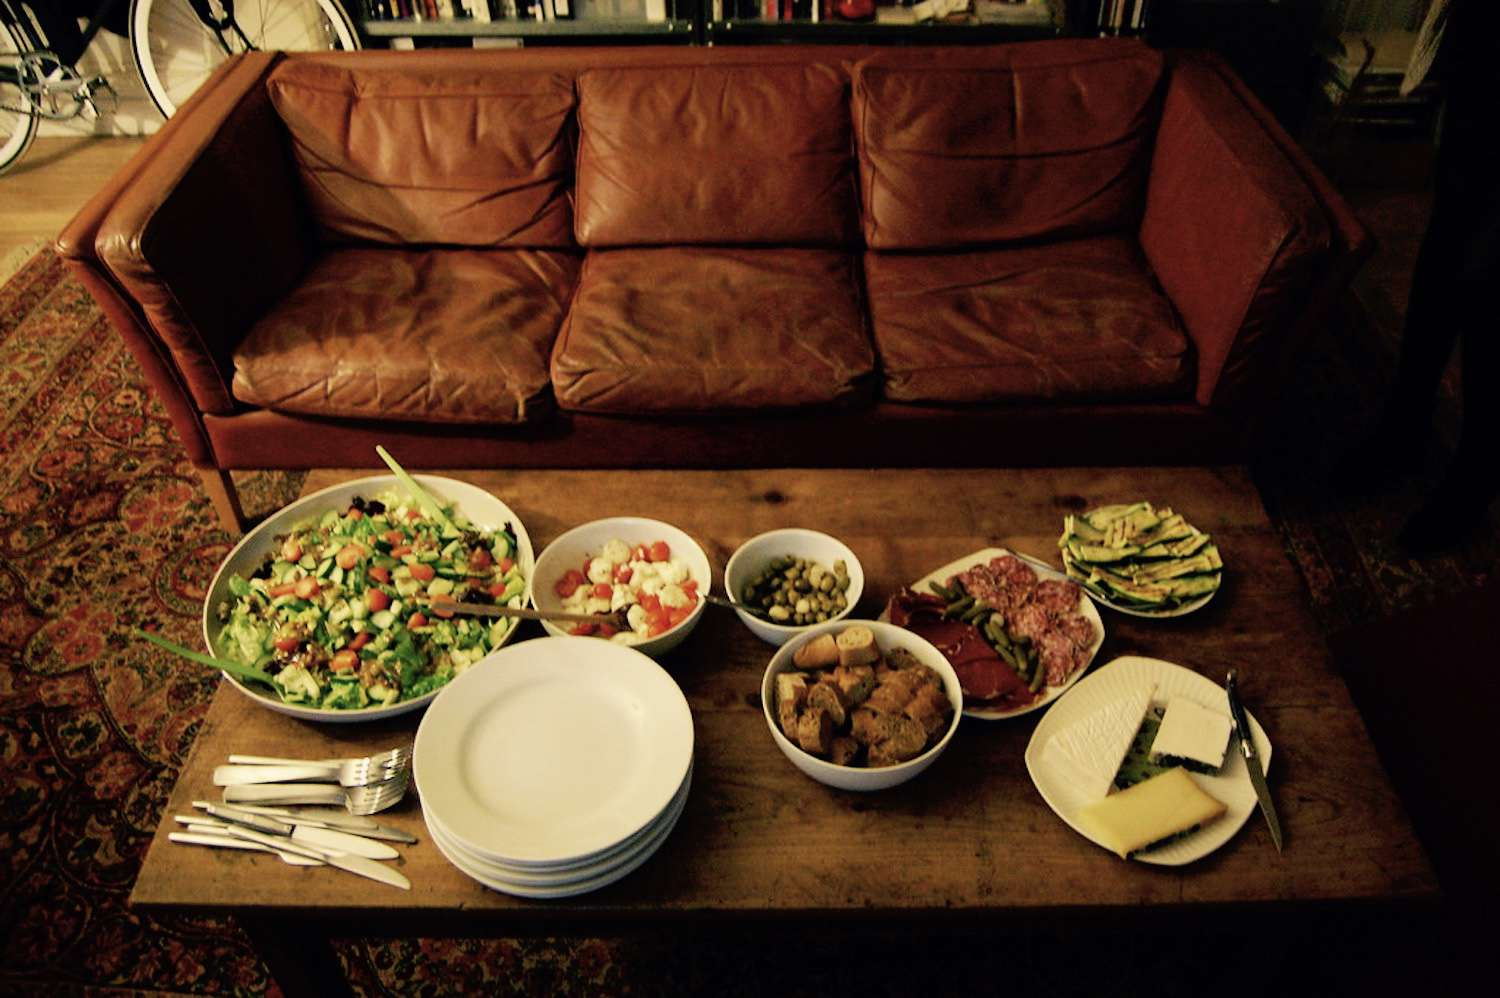 couch with dinner in front of it